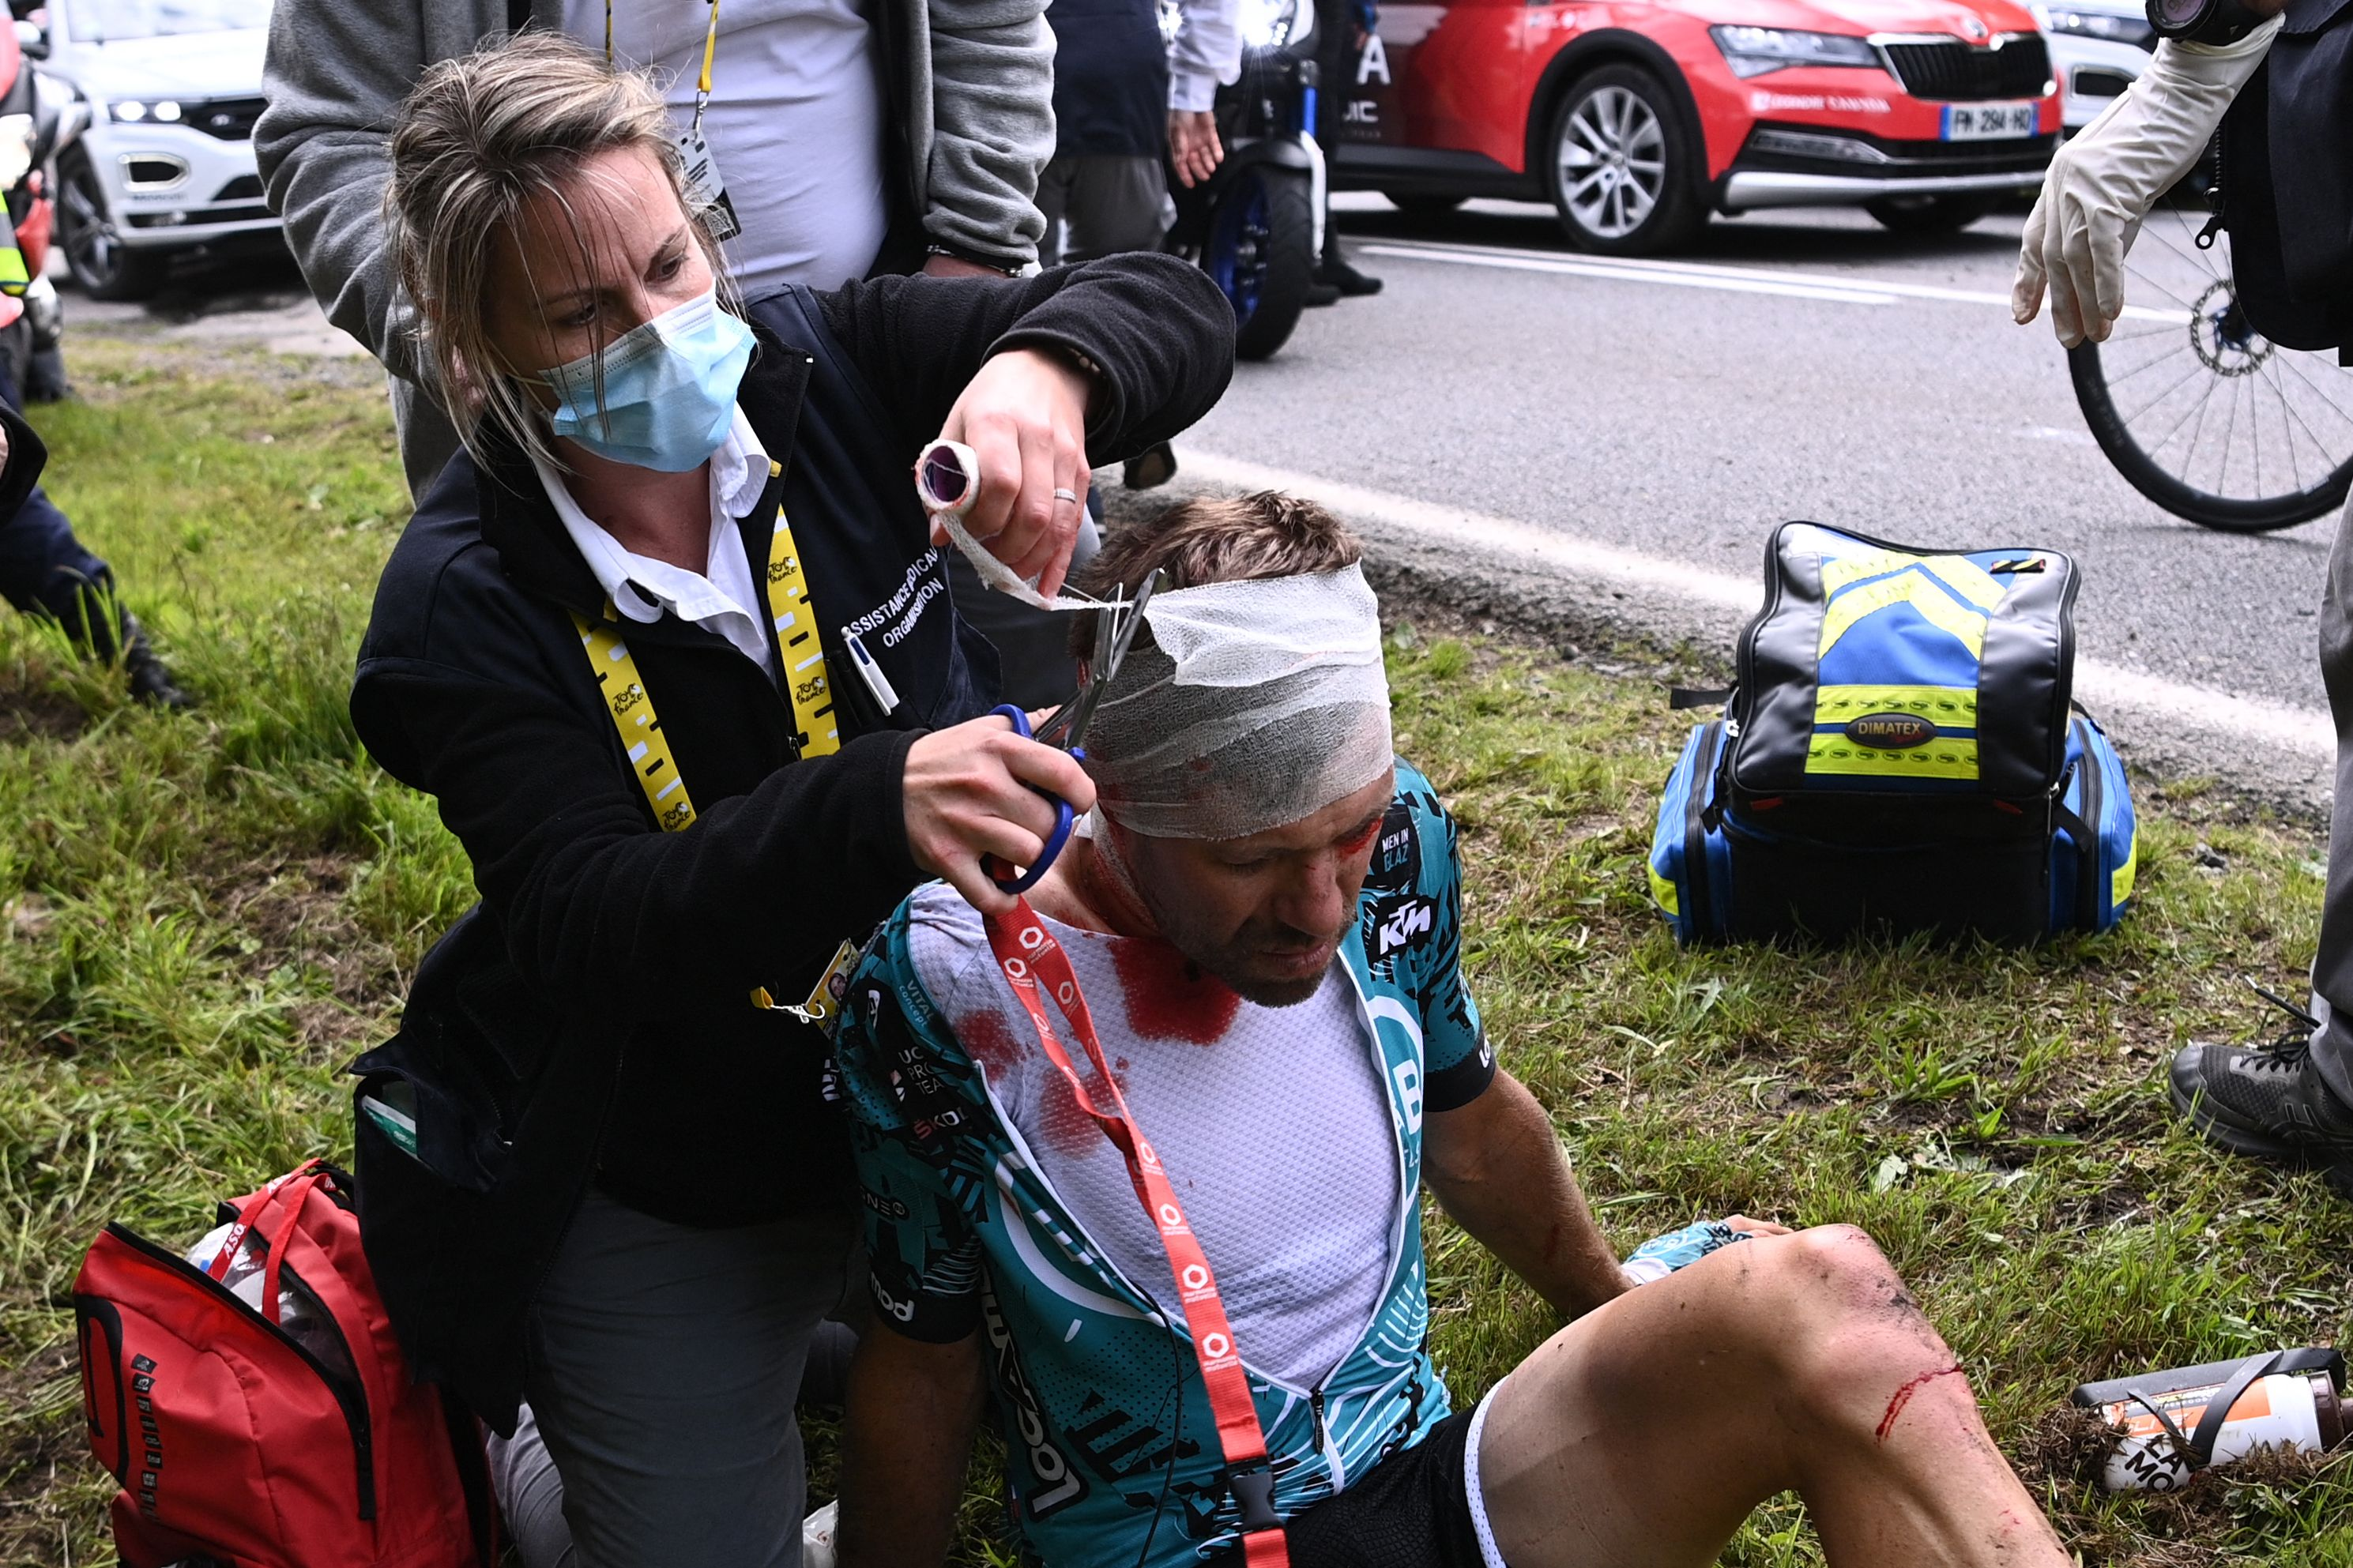 Cyril Lemoine receives treatment at the roadside following Saturday's crash. Photo: ANNE-CHRISTINE POUJOULAT/POOL/AFP via Getty Images